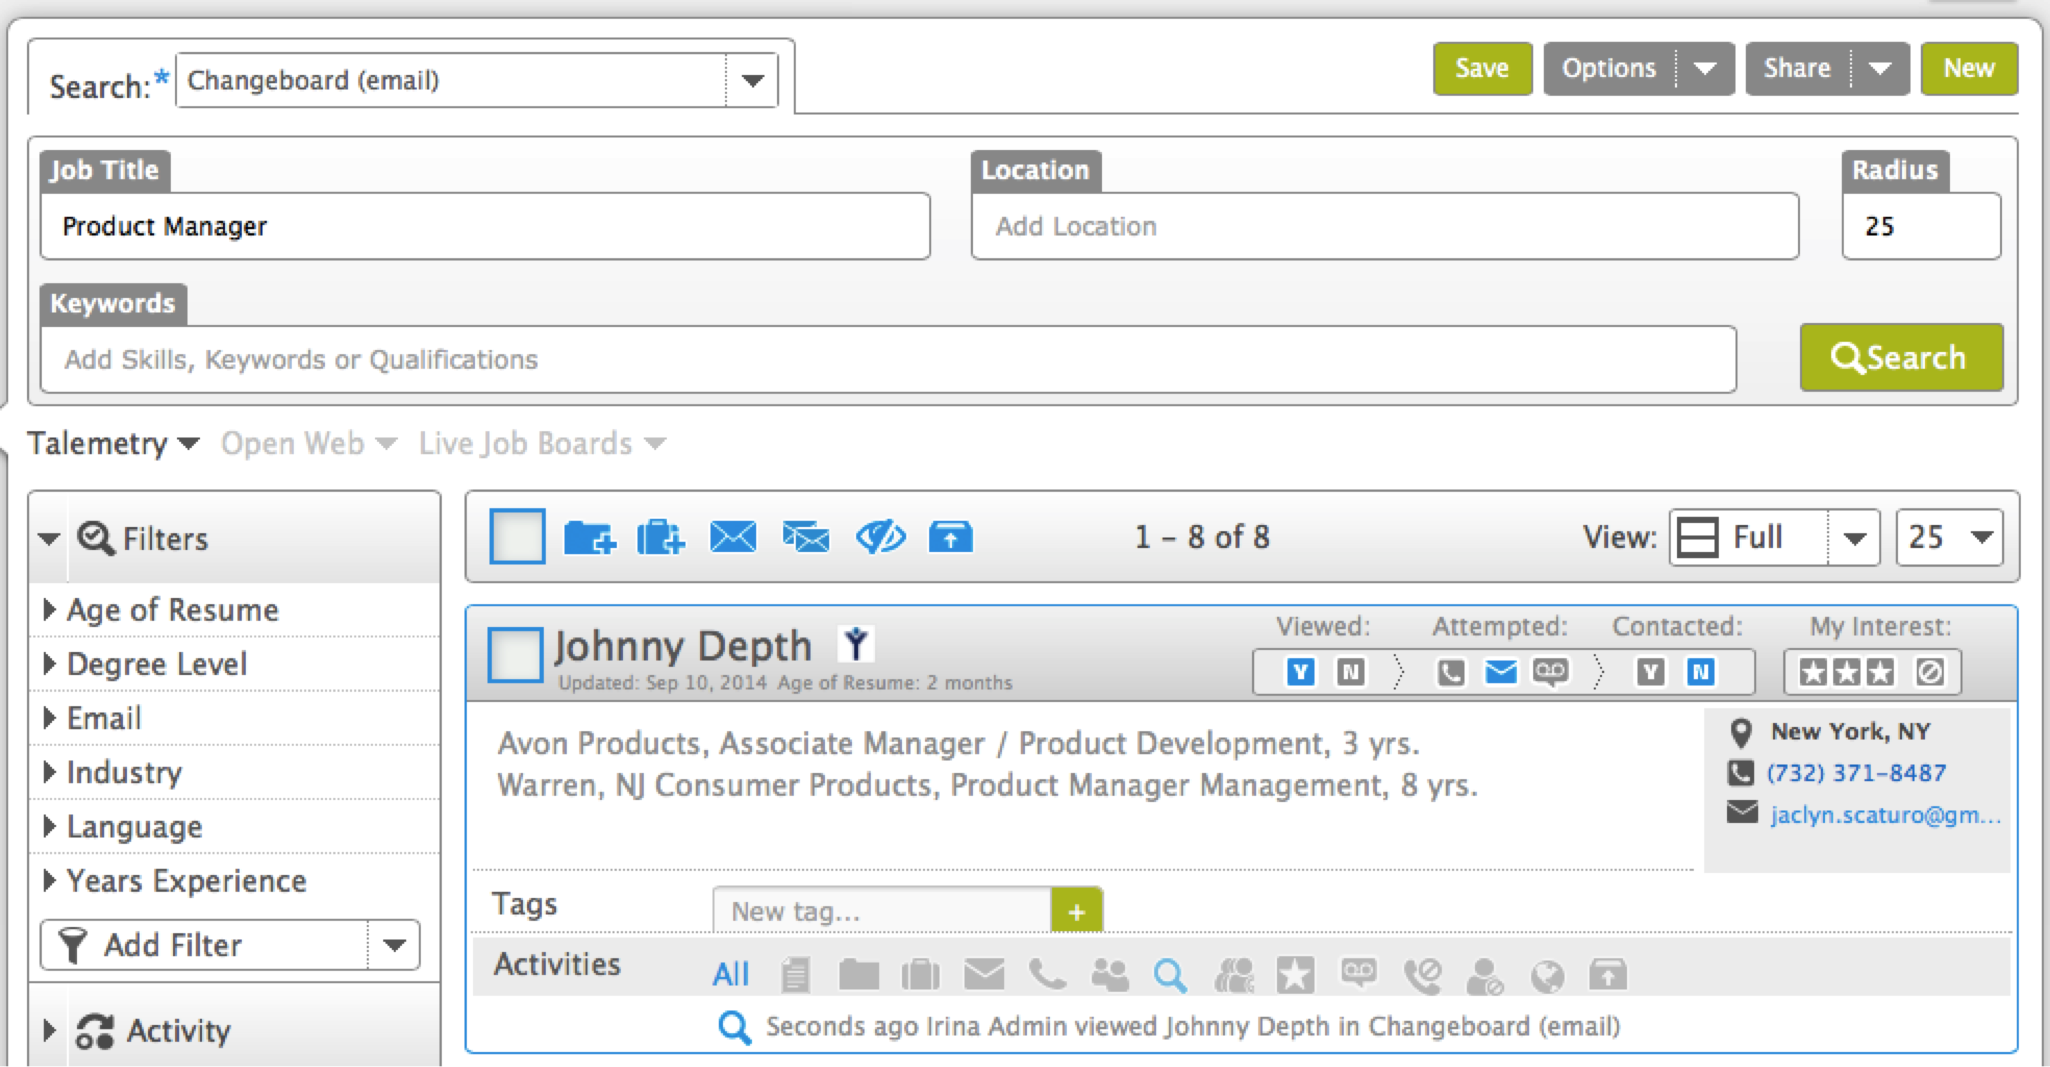 SearchTalemetry